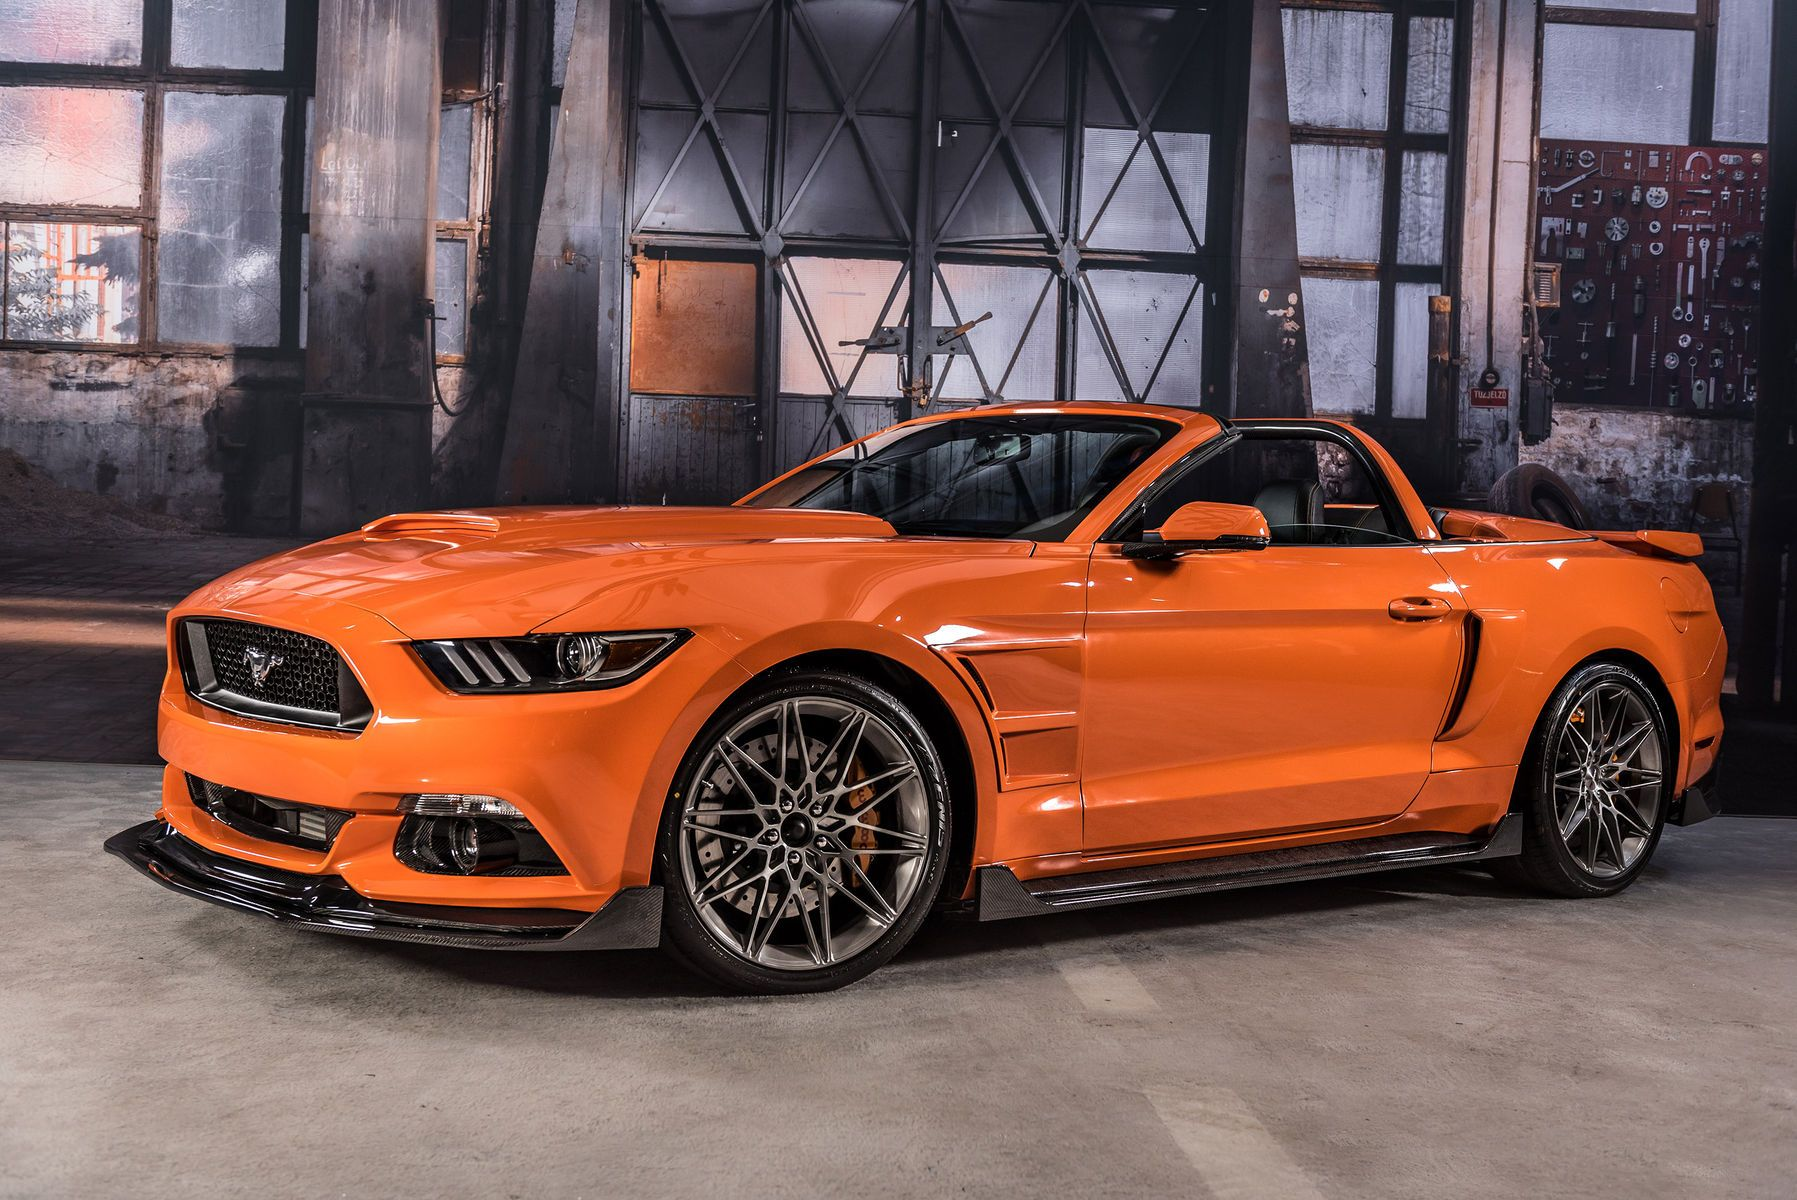 Ford Sema 2016 2017 Mustang Convertible By Schcraft Interiors